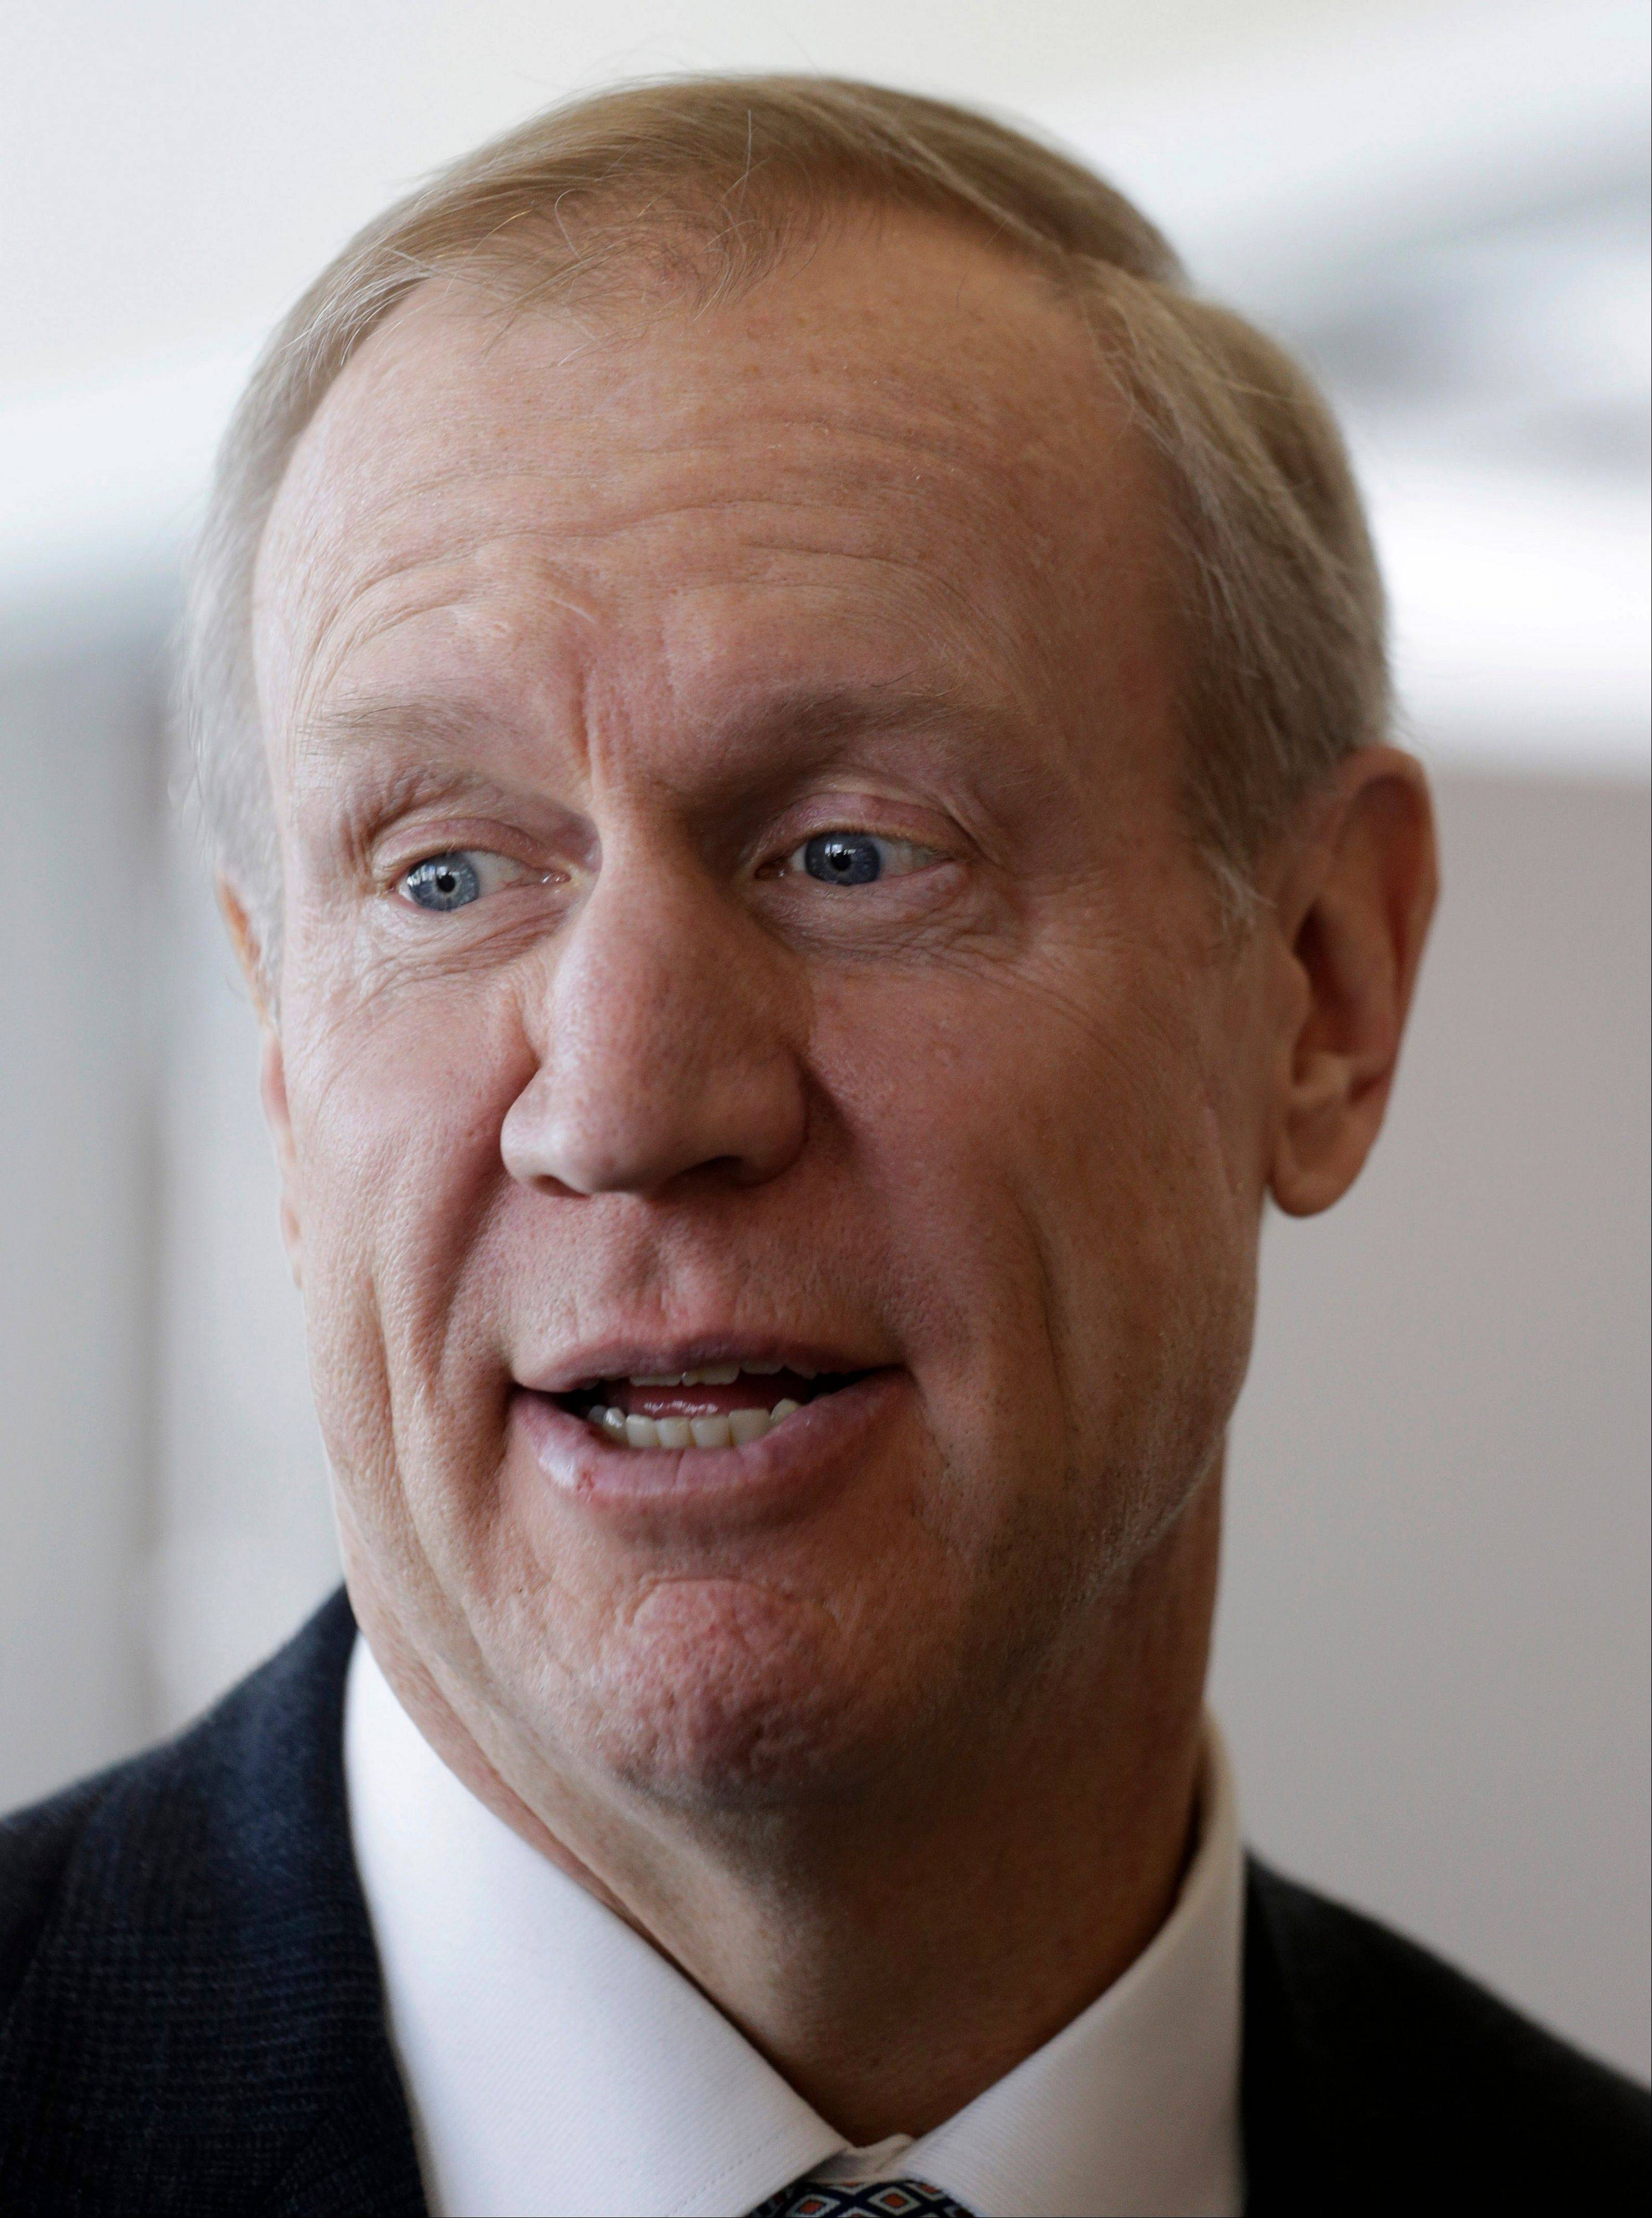 Republican venture capitalist Bruce Rauner said is he running for Illinois governor in 2014. He will face state Treasurer Dan Rutherford in the GOP primary. Republican Sens. Kirk Dillard and Bill Brady also have expressed interest.